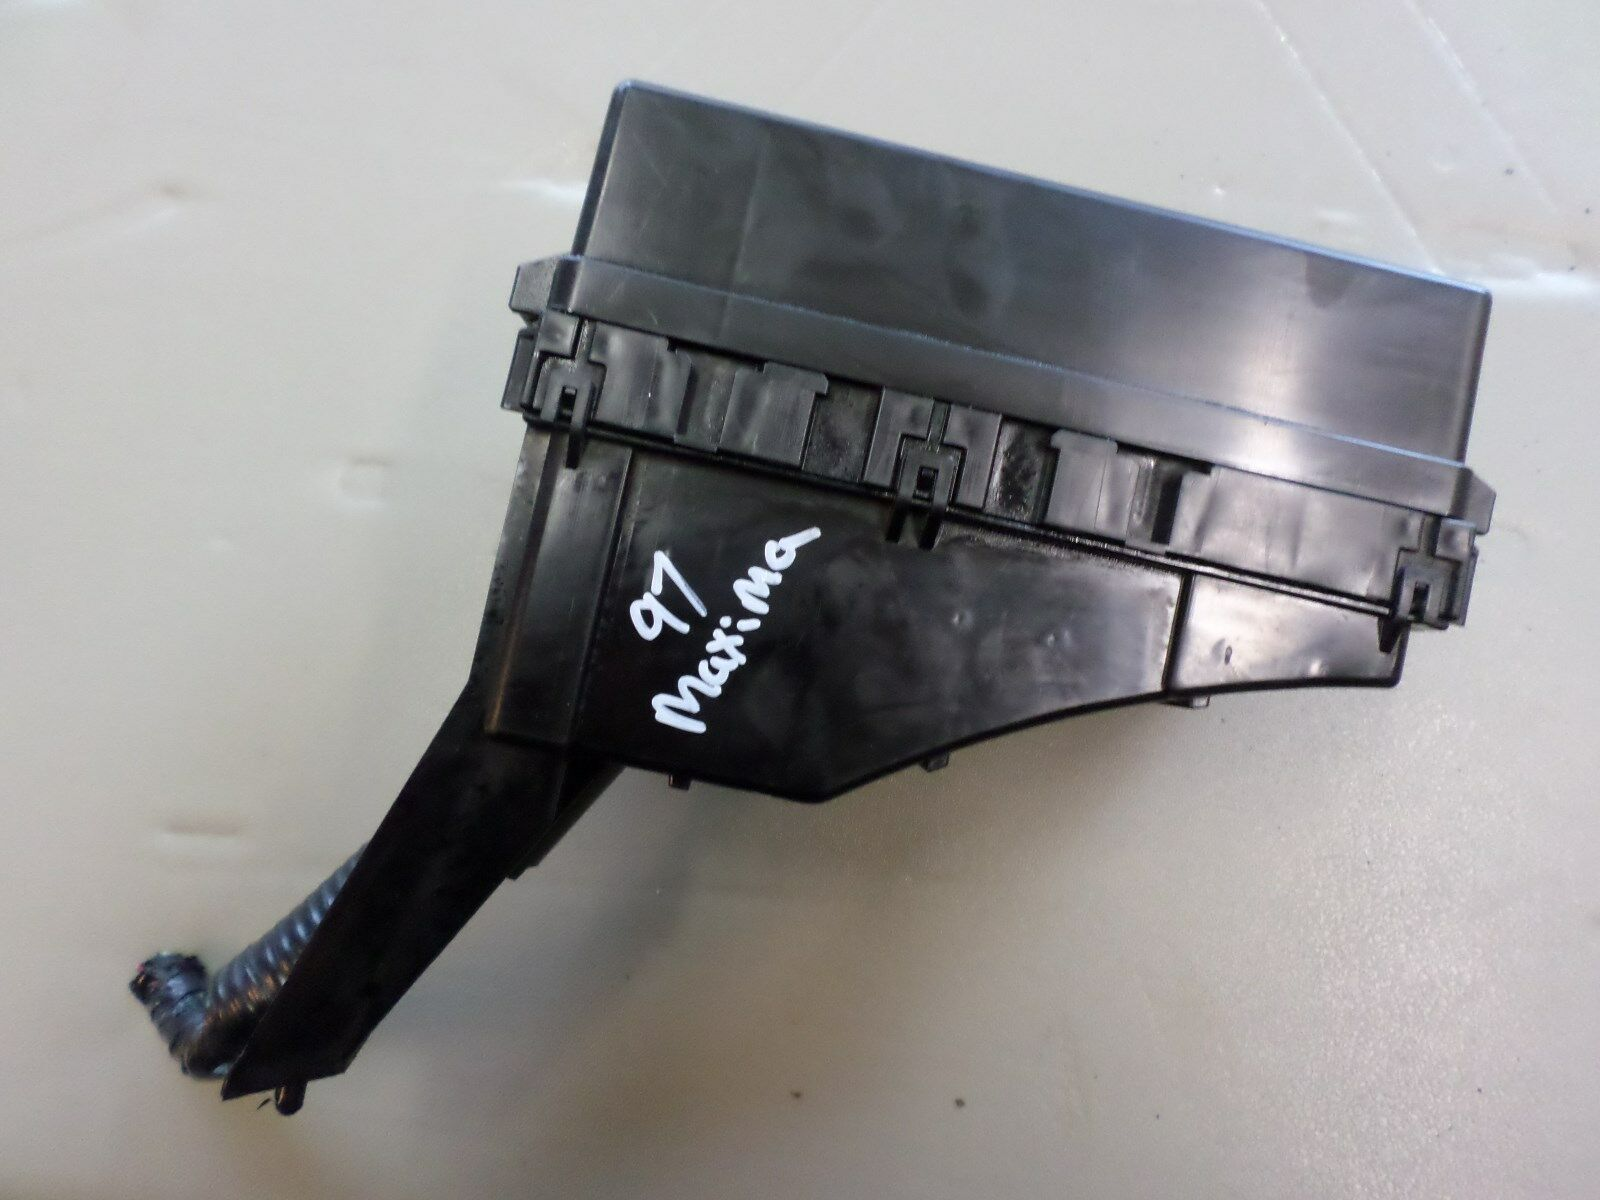 1995 1999 nissan maxima oem underhood fuse box p n 7154 3053 1995 1999 nissan maxima oem underhood fuse box in good working condition when it was removed from a 1997 model maxima please verify part fitment using